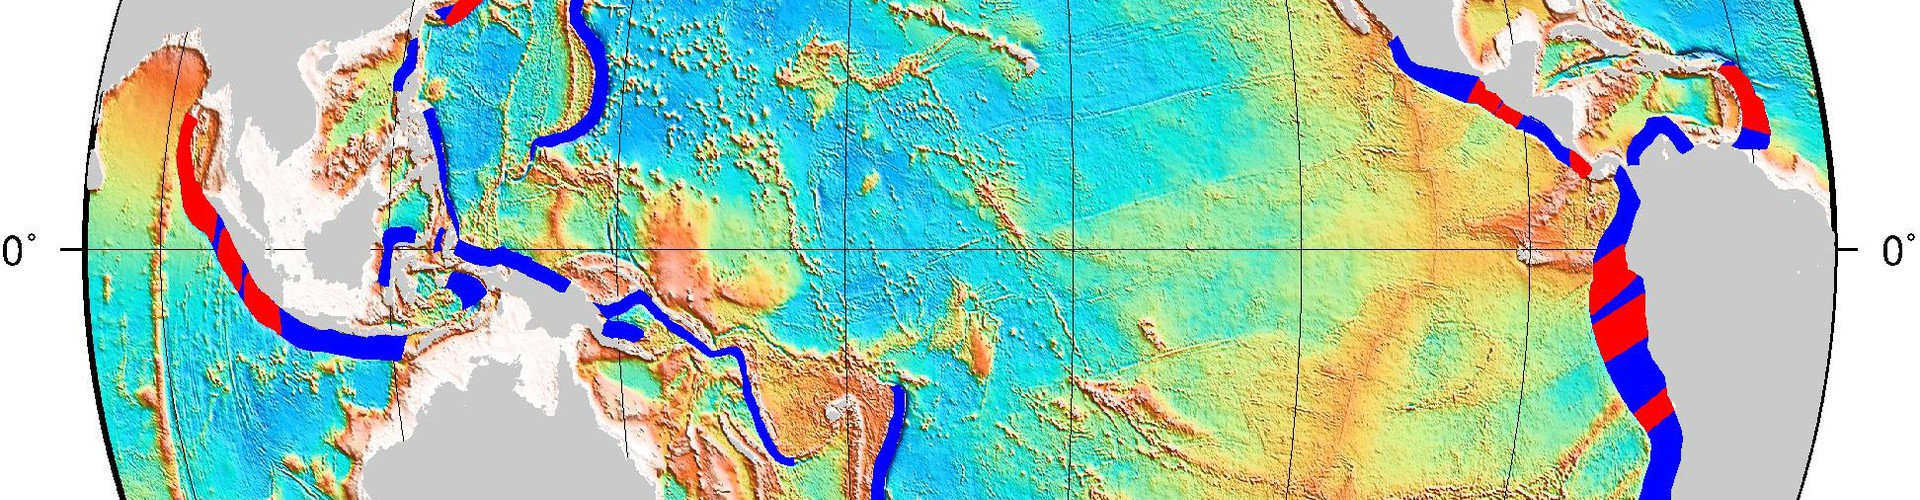 Red marks the hotspots: strong earthquakes occur more often where cracks on the seafloor overlap subduction zones (in blue). (Credit: Müller and Landgrebe)